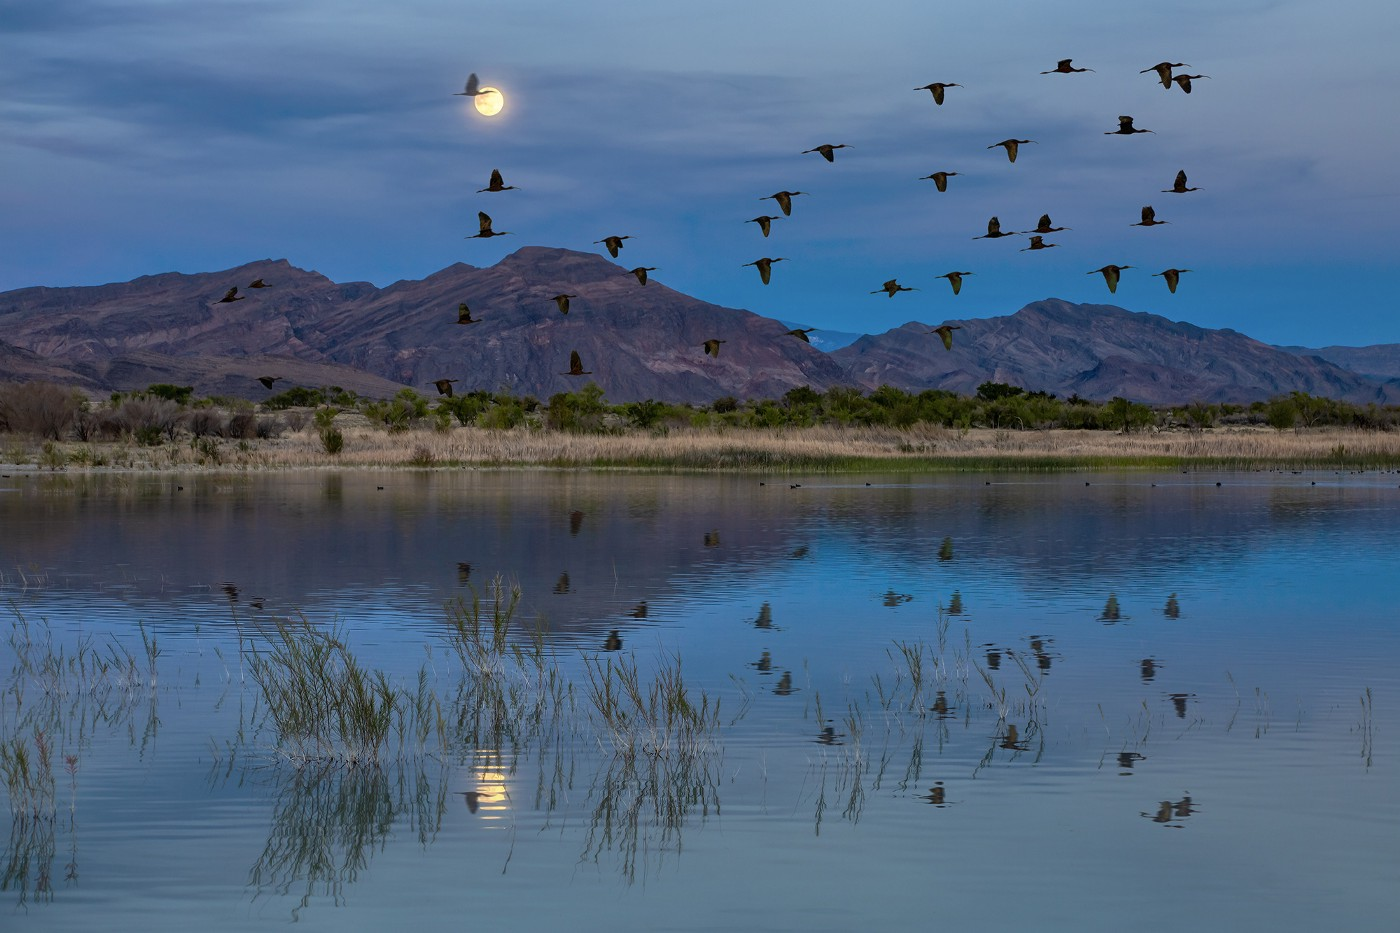 waterfowl in the air over water in the evening